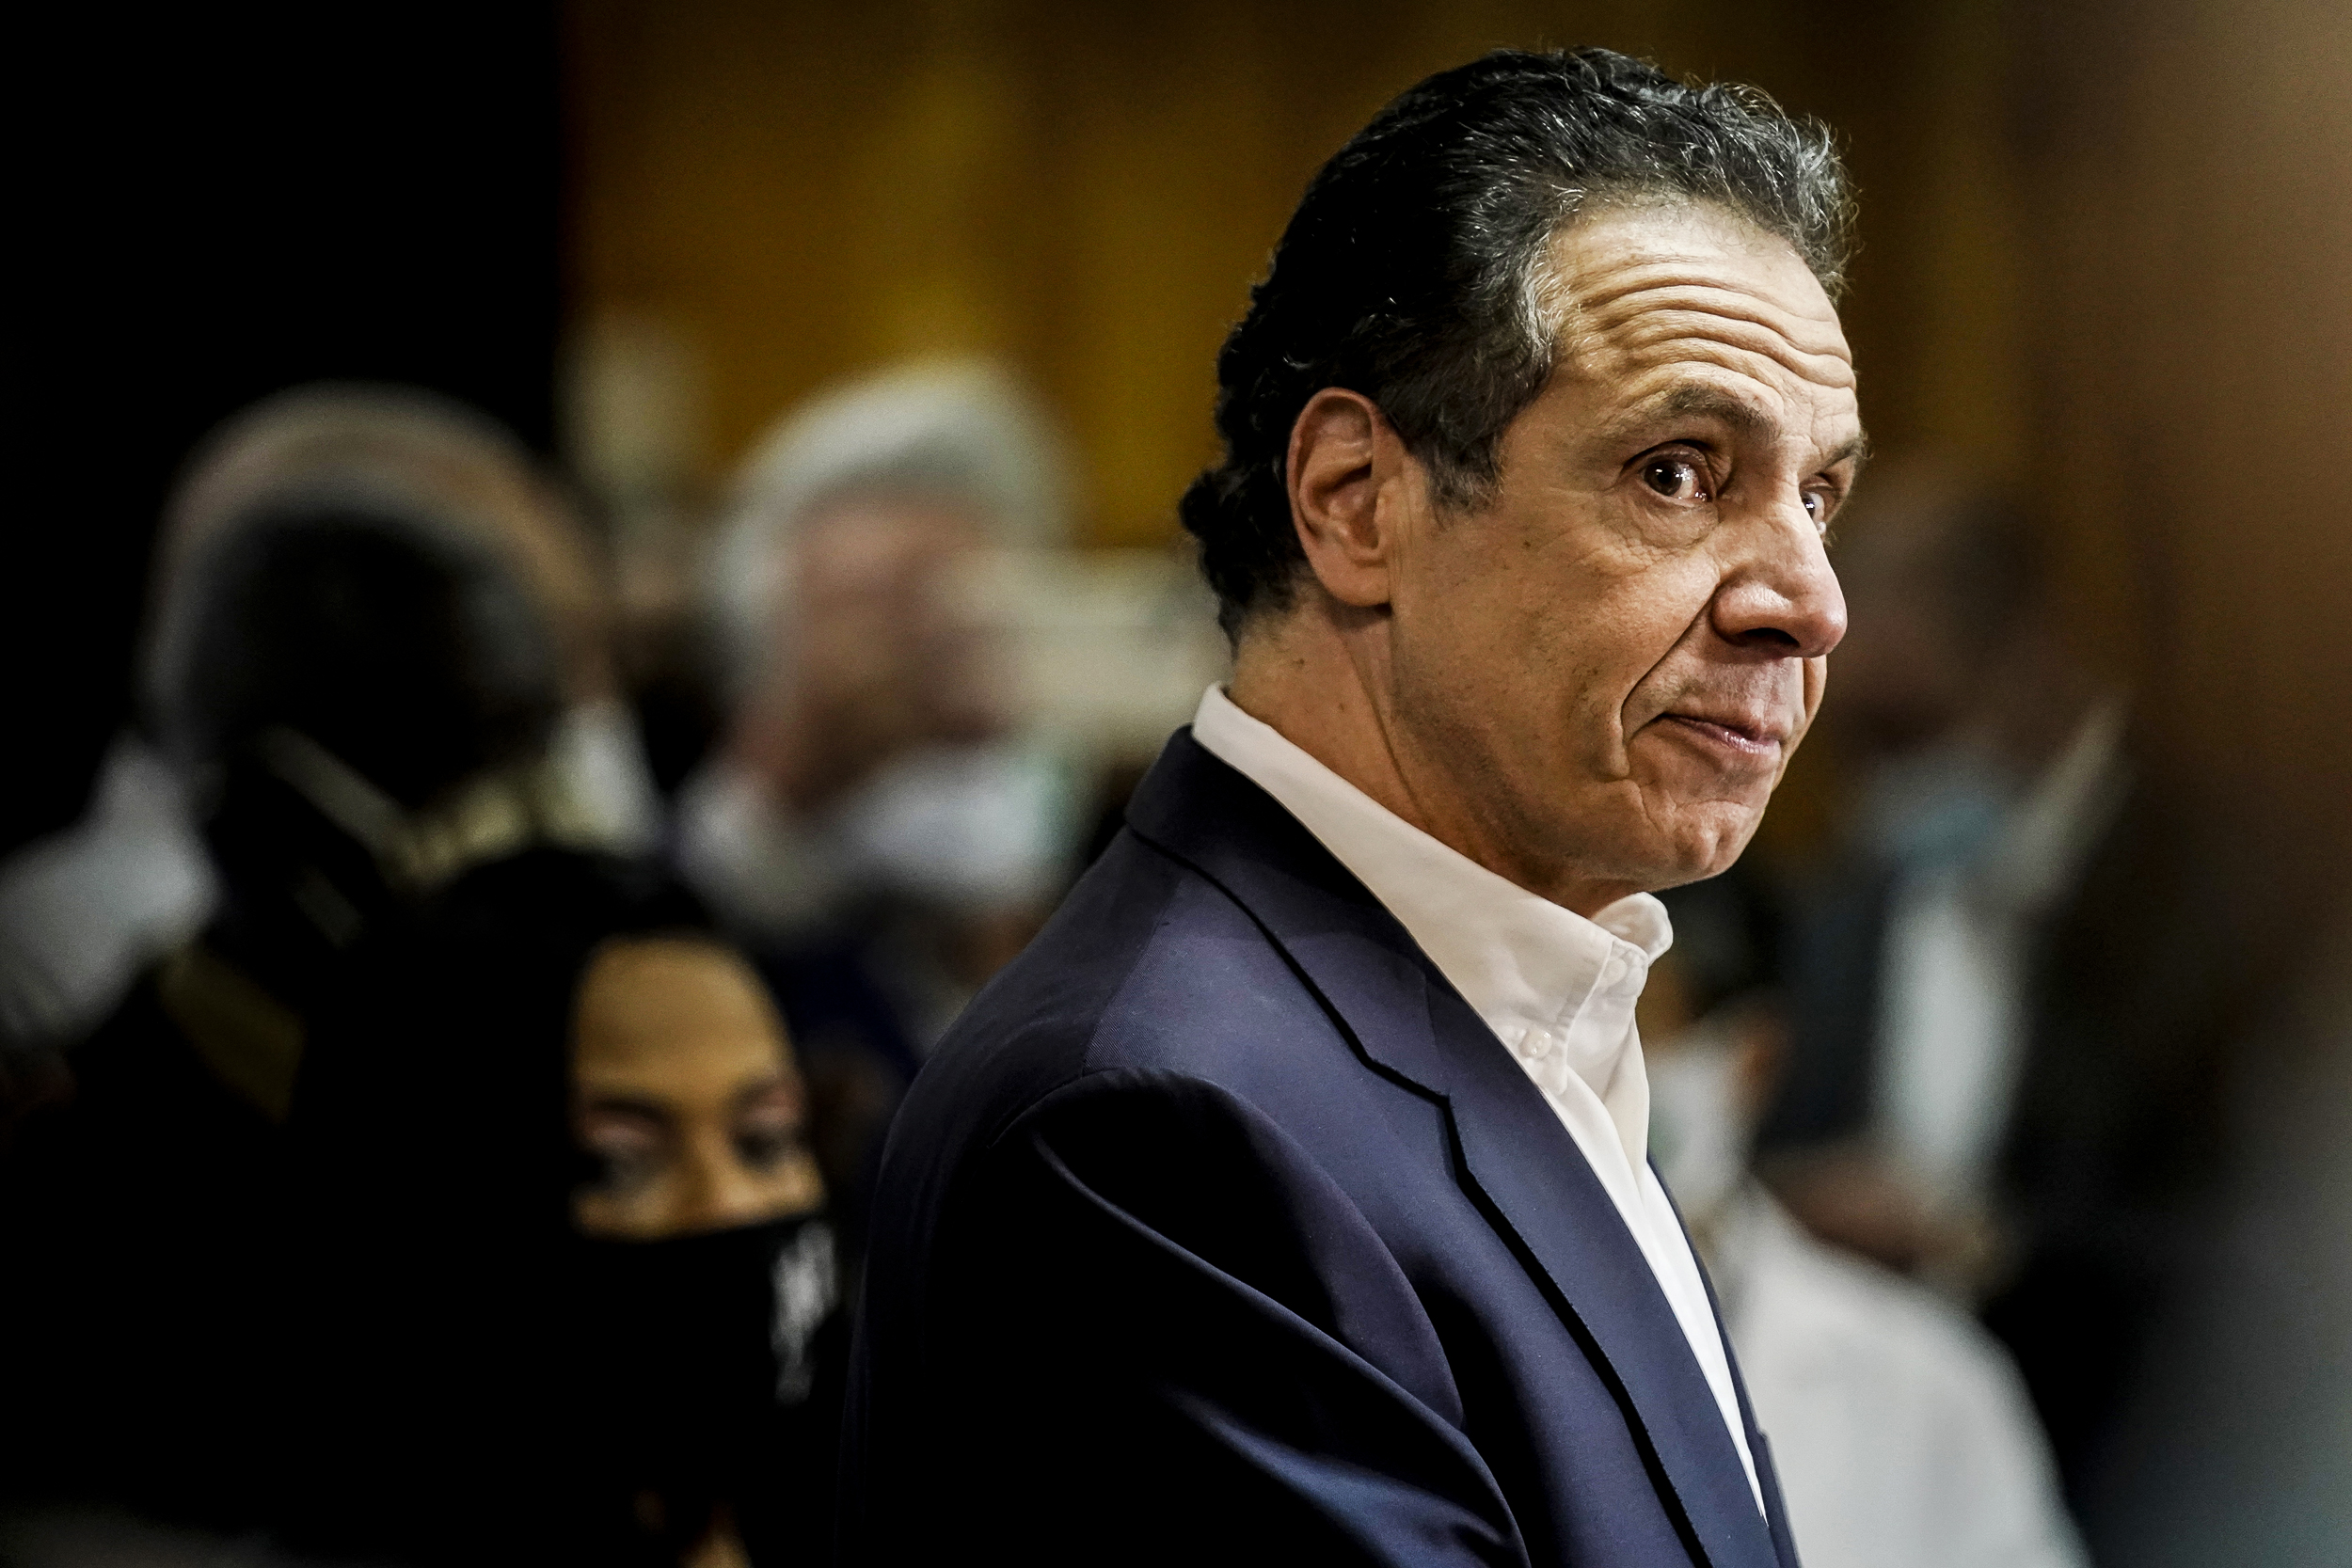 'Creepy' and 'flirtatious': How Cuomo allegedly sexually harassed a state trooper